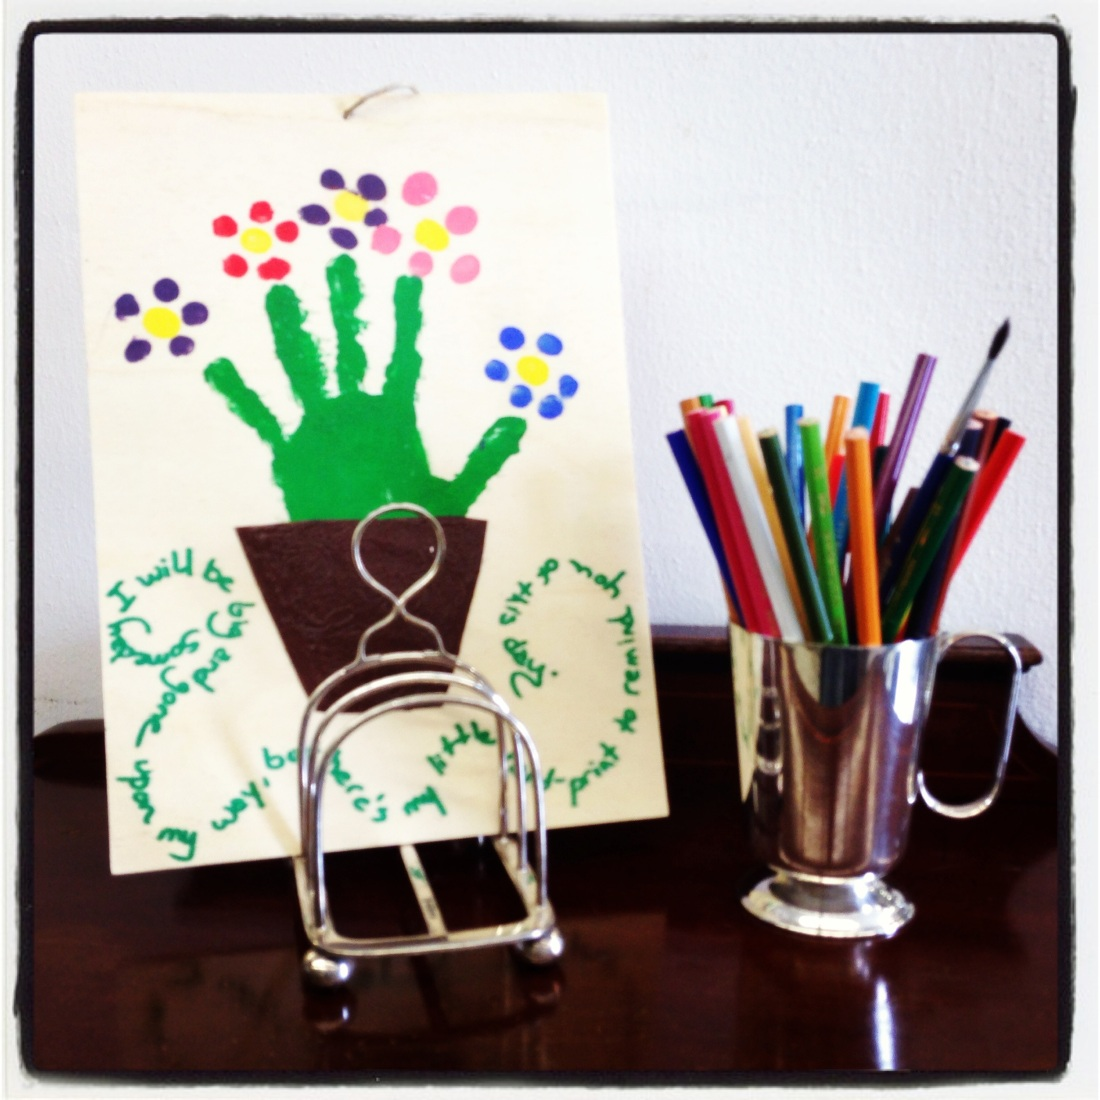 Mother's Day present: A REAL HAND PAINTING